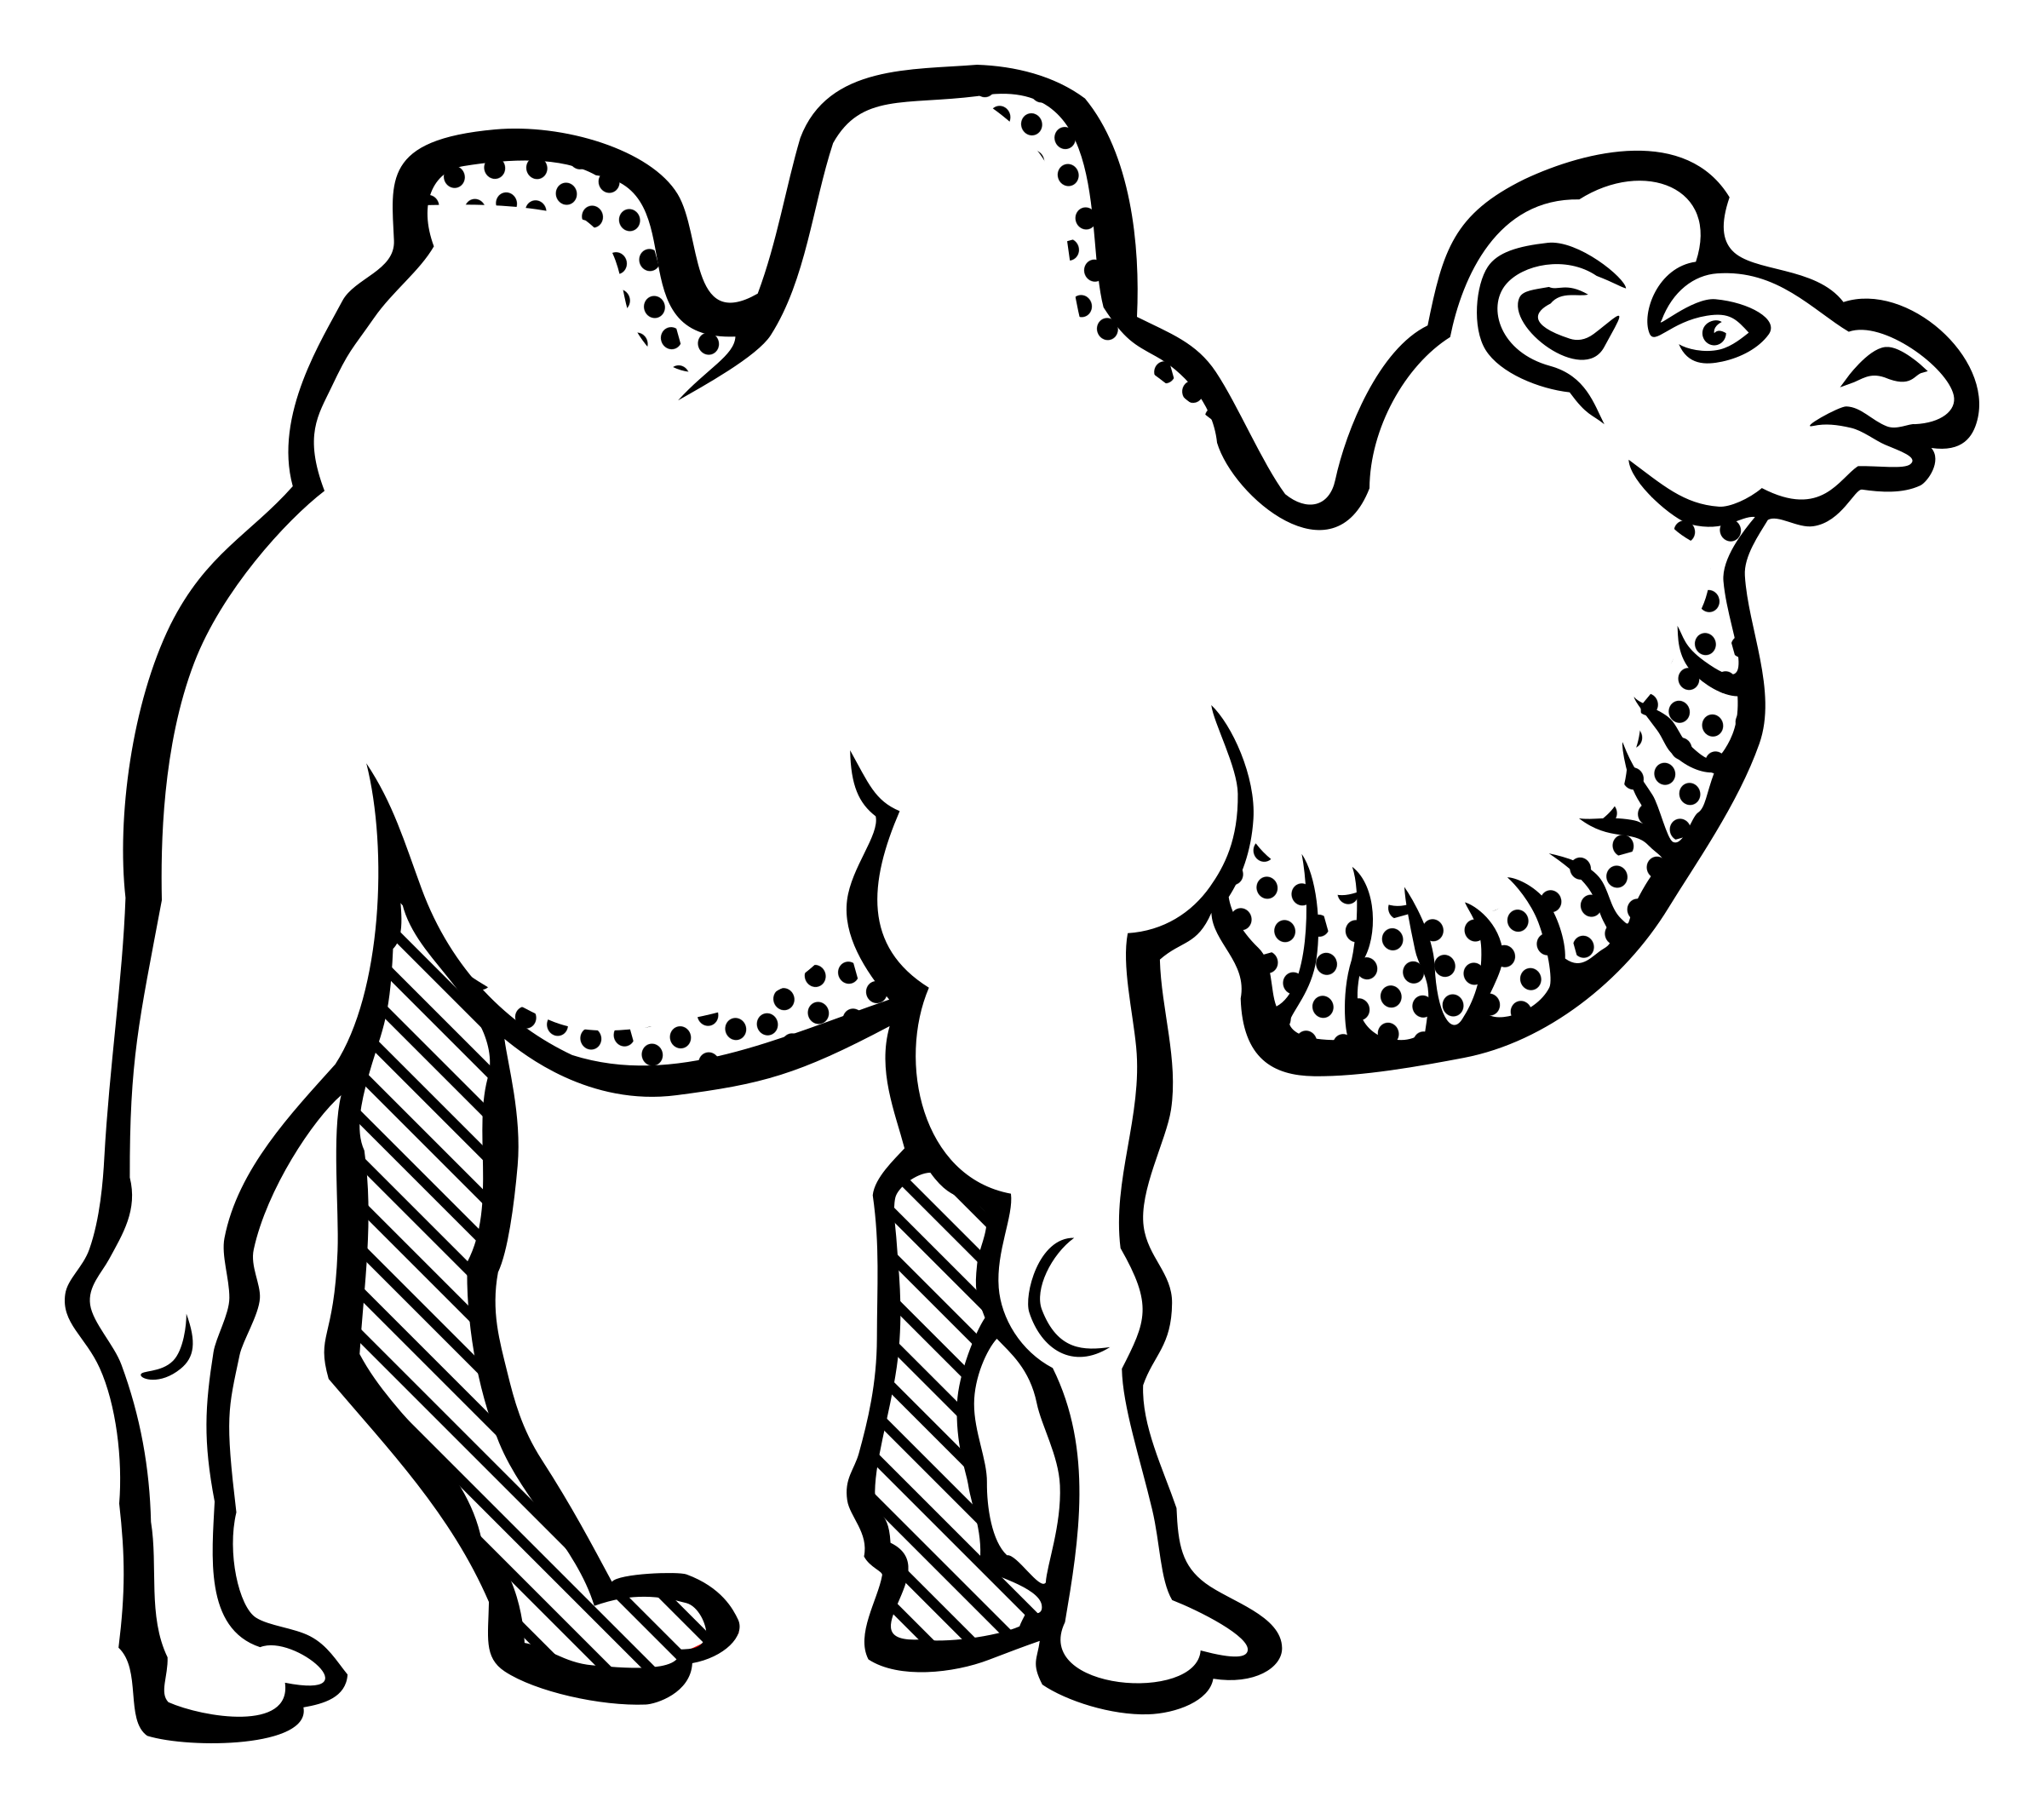 Camel clipart outline image royalty free Camel Clipart Black And White | Free download best Camel Clipart ... image royalty free